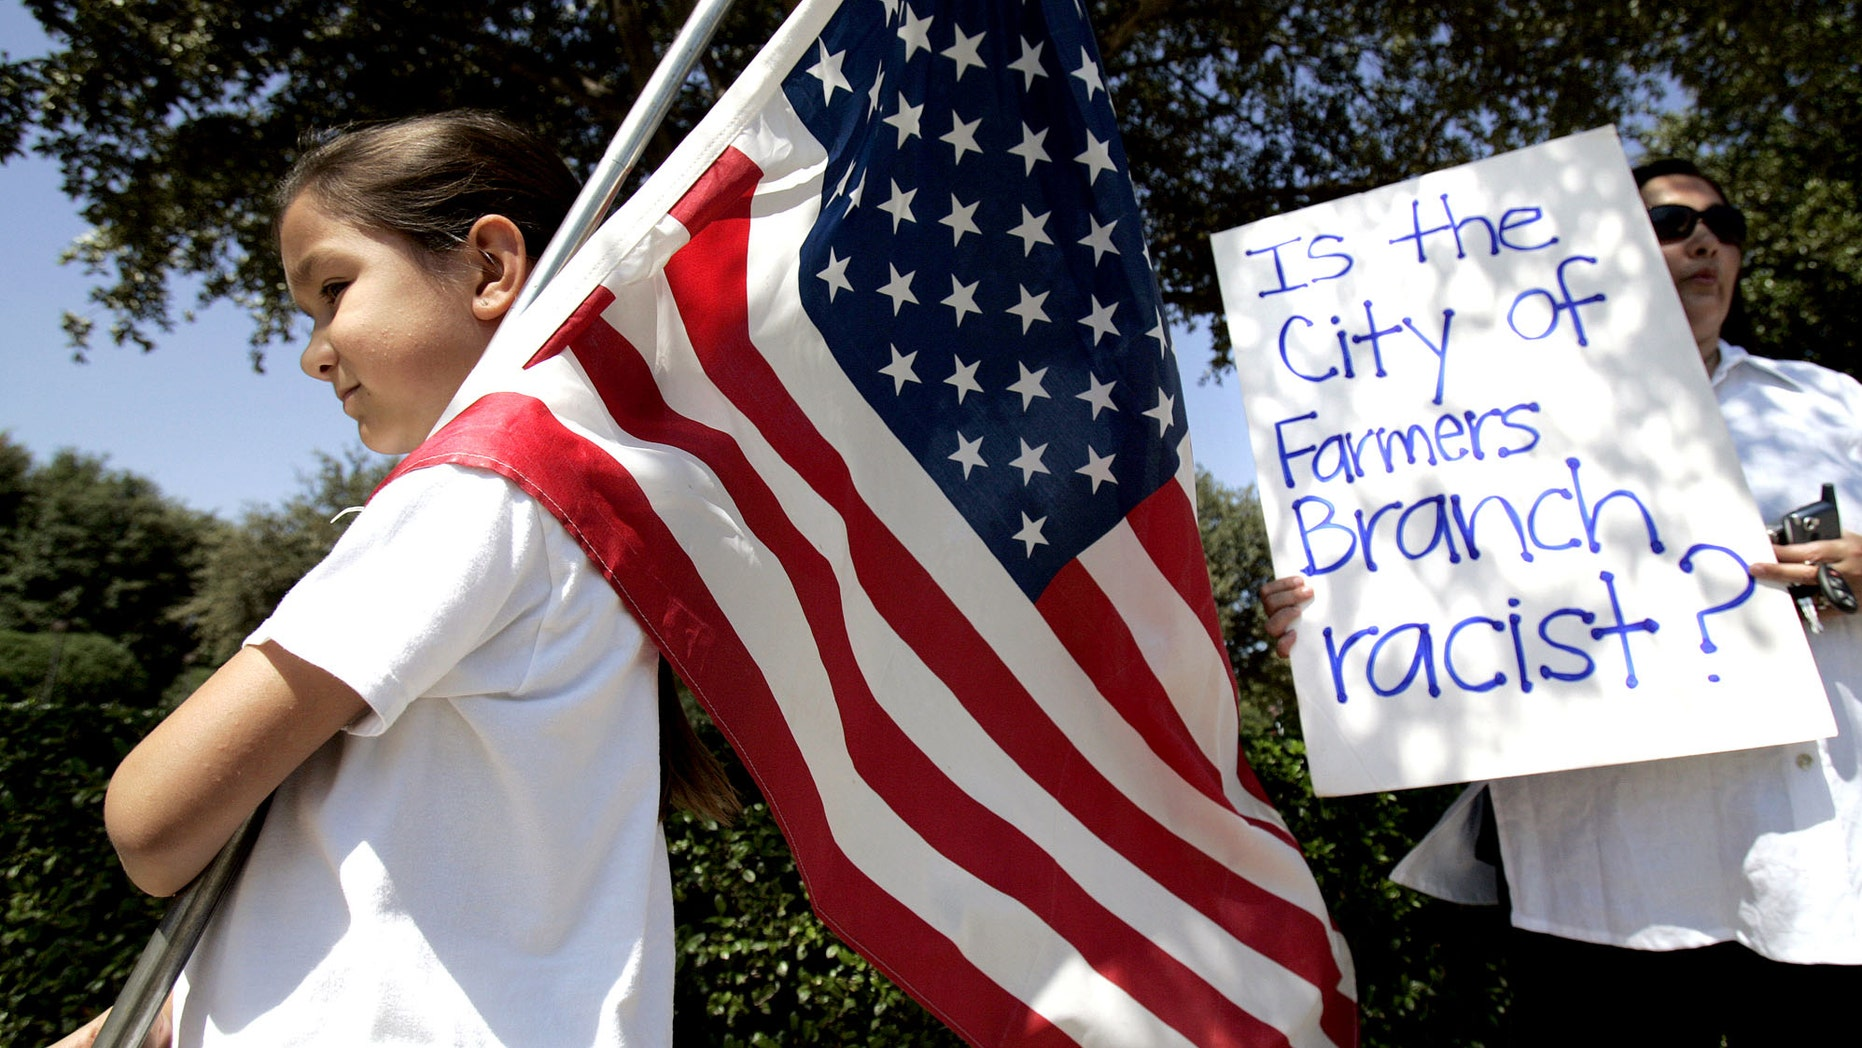 In this Aug. 26, 2006 file photo, Natalie Villafranca, 6, left, hold a flag as her mother, Elizabeth Villafranca, holds a sign in front of city hall in Farmers Branch, Texas, during an immigration law protest. (AP Photo/L.M. Otero, File)